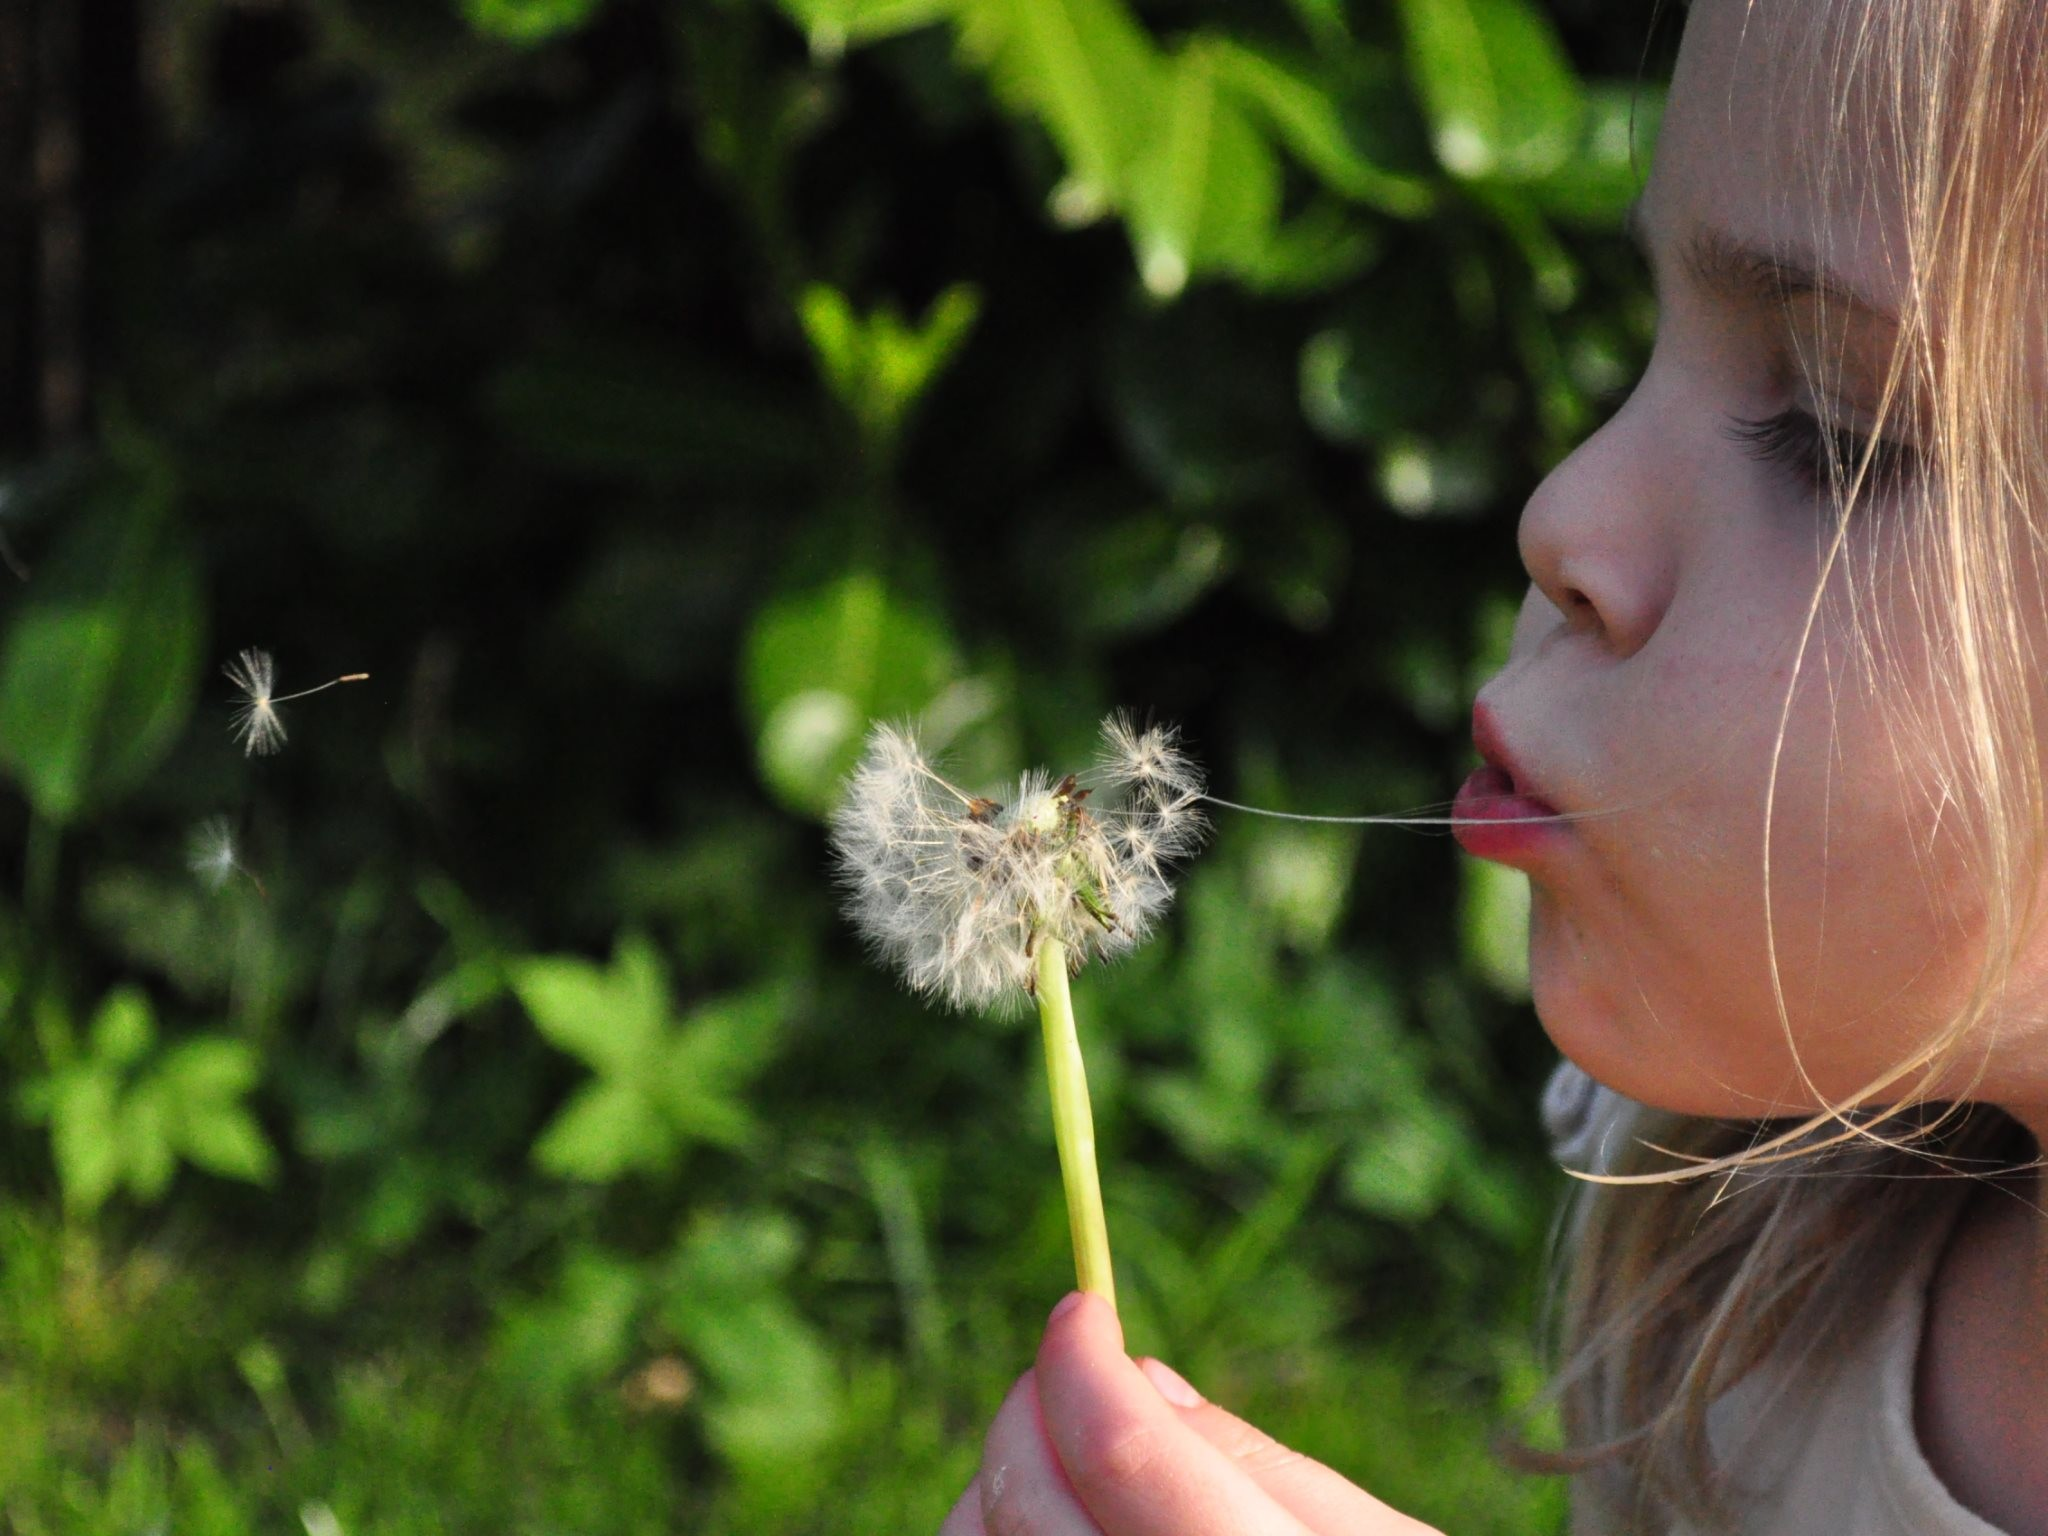 4K HD Wallpaper: Little Girl Blowing Dandelion